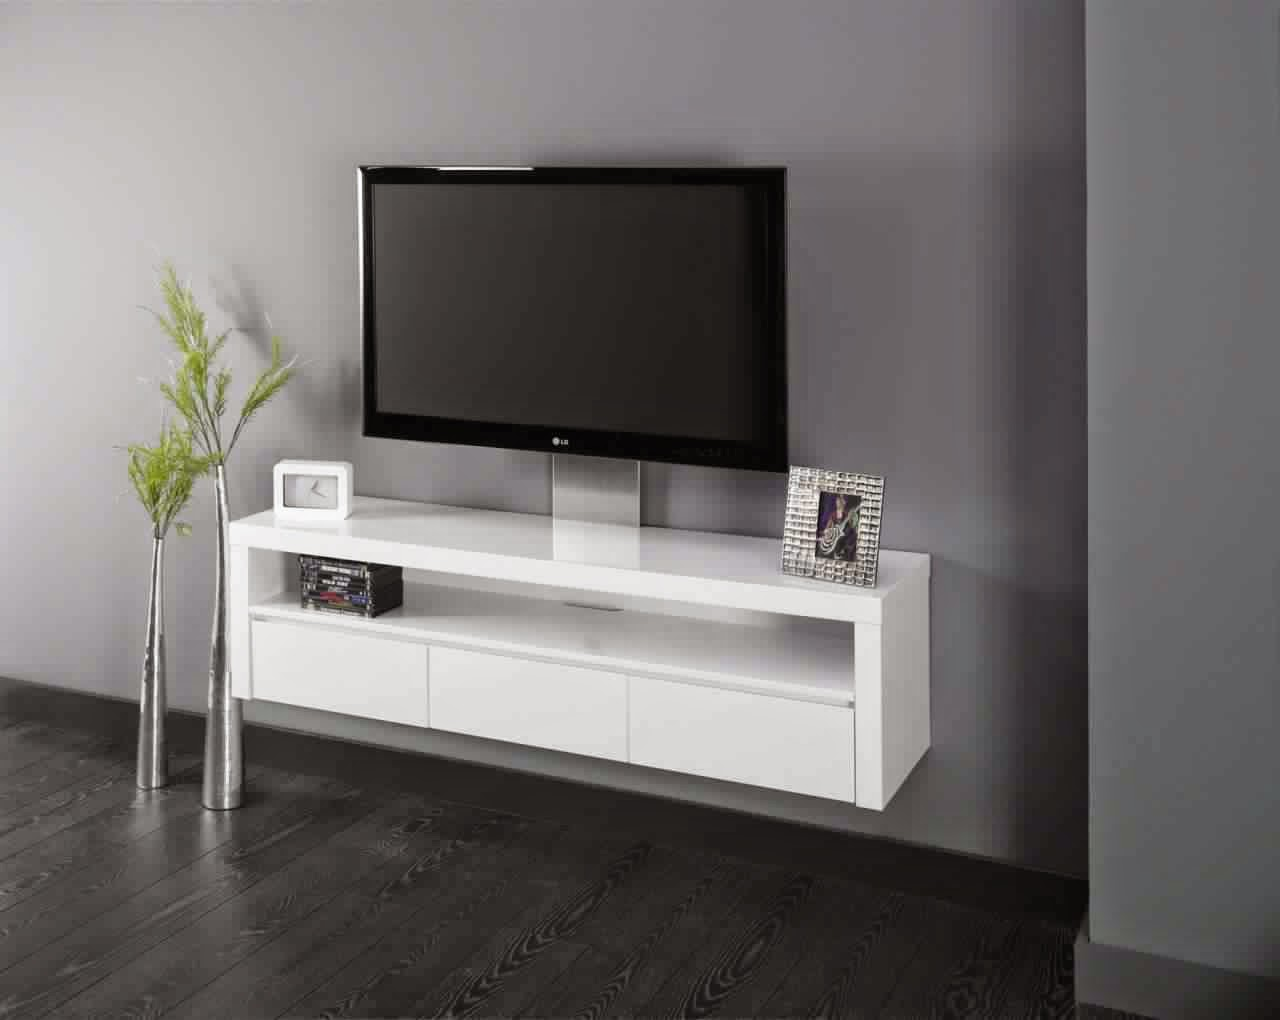 Meuble tv suspendu ikea maison design - Meuble de television ikea ...